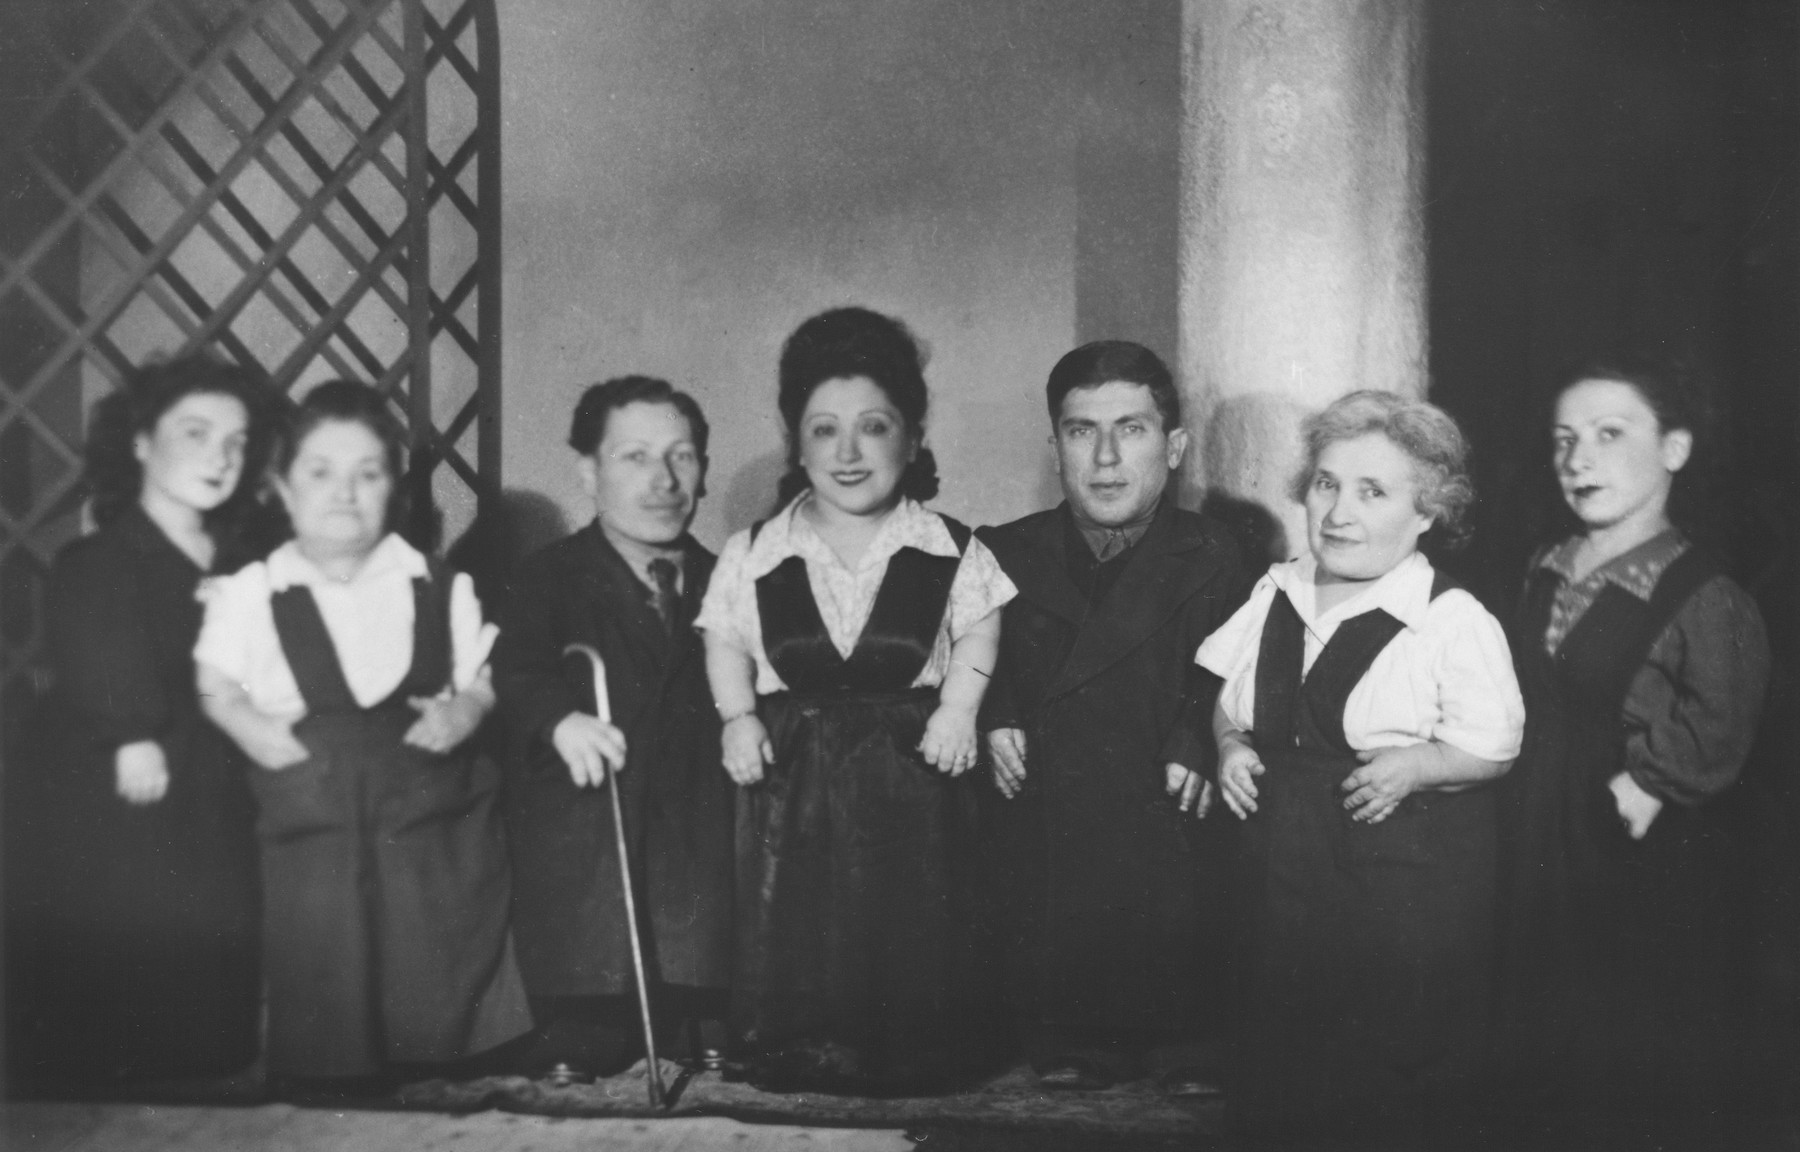 Group portrait of the Ovici family, a family of Jewish dwarf entertainers known as the Lilliput Troupe, who survived Auschwitz.  Pictured are Perla, Rozika, Abraham, Frieda, Micki, Francesca and Elizabeth Ovici.